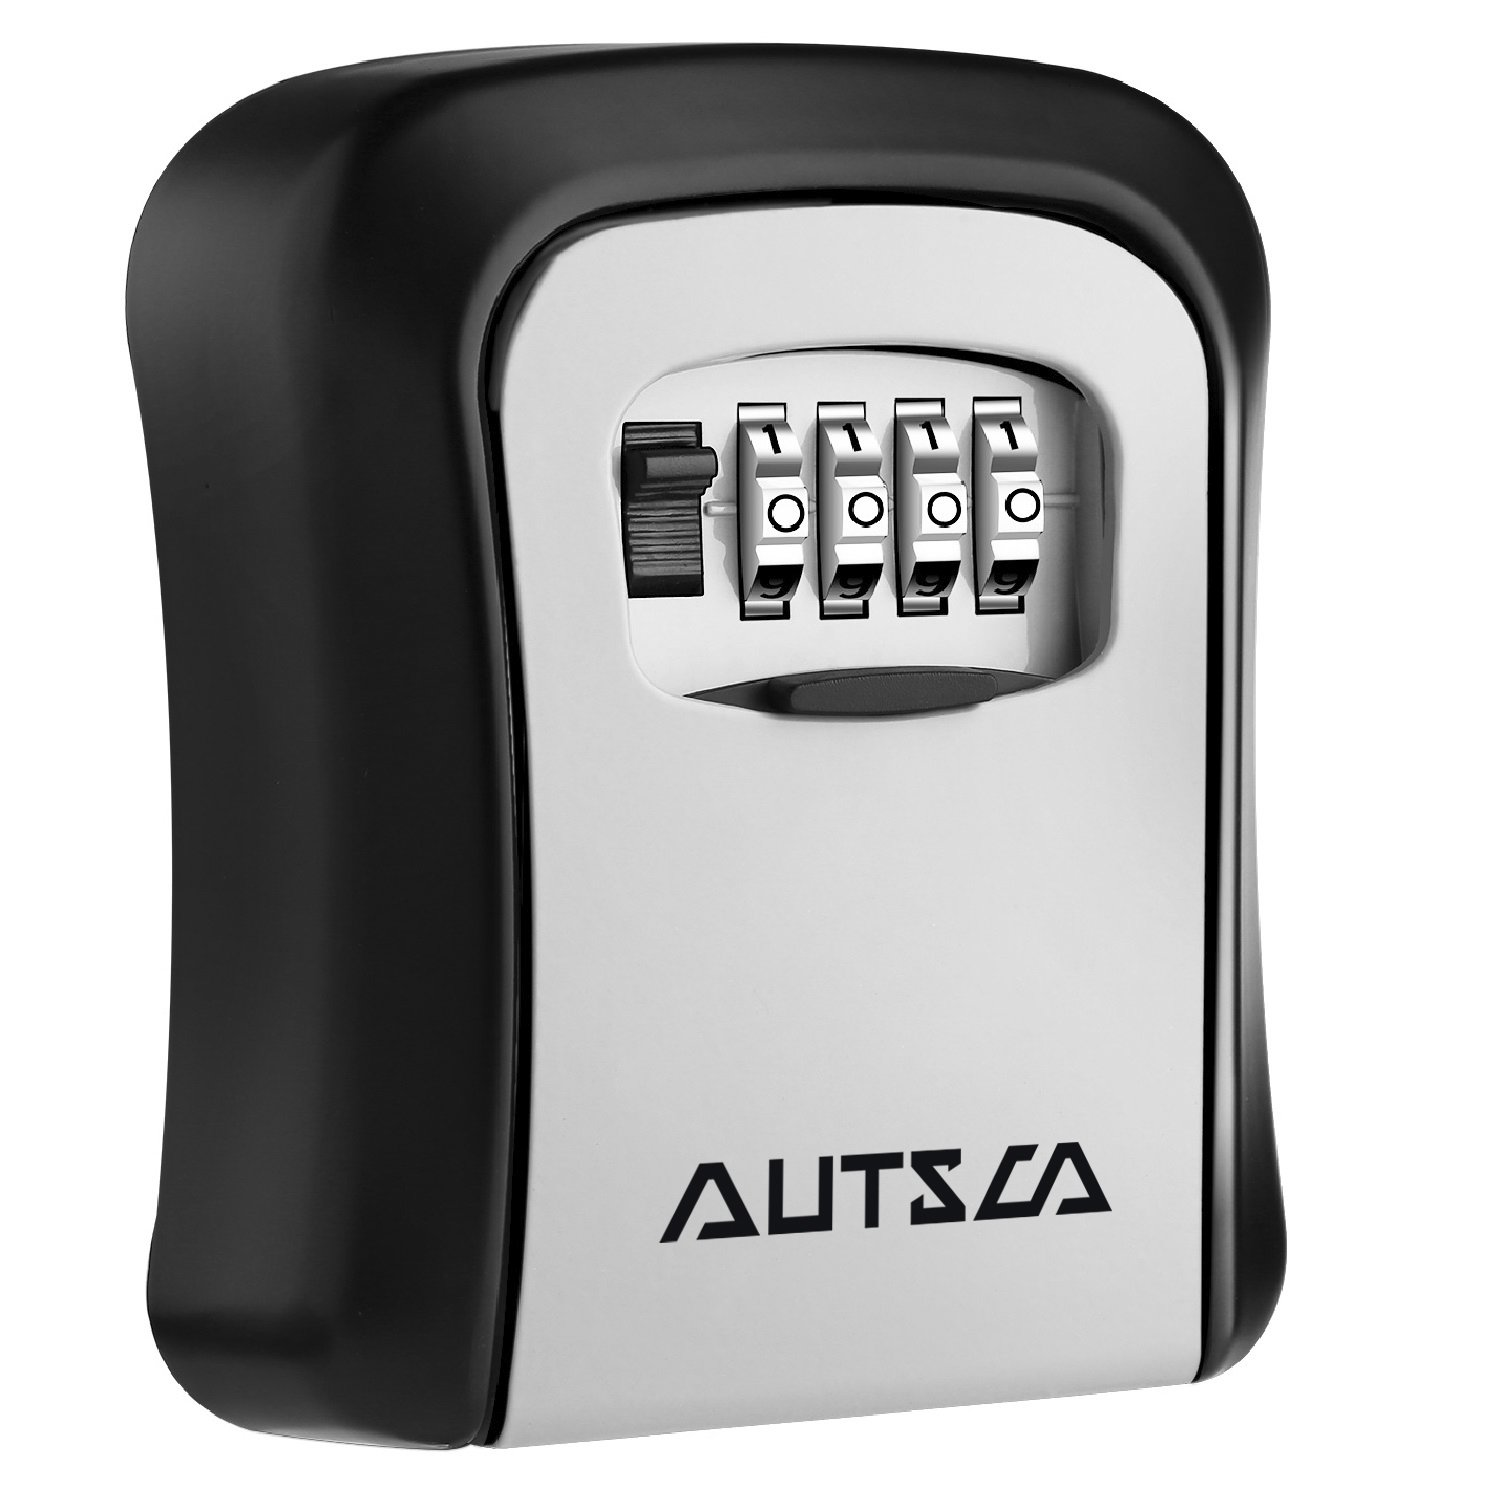 AUTSCA Key Lock Box Wall Mounted Stainless Steel Key Safe Box Weatherproof 4 Digit Combination Key Storage Lock Box Indoor Outdoor by AUTSCA (Image #1)